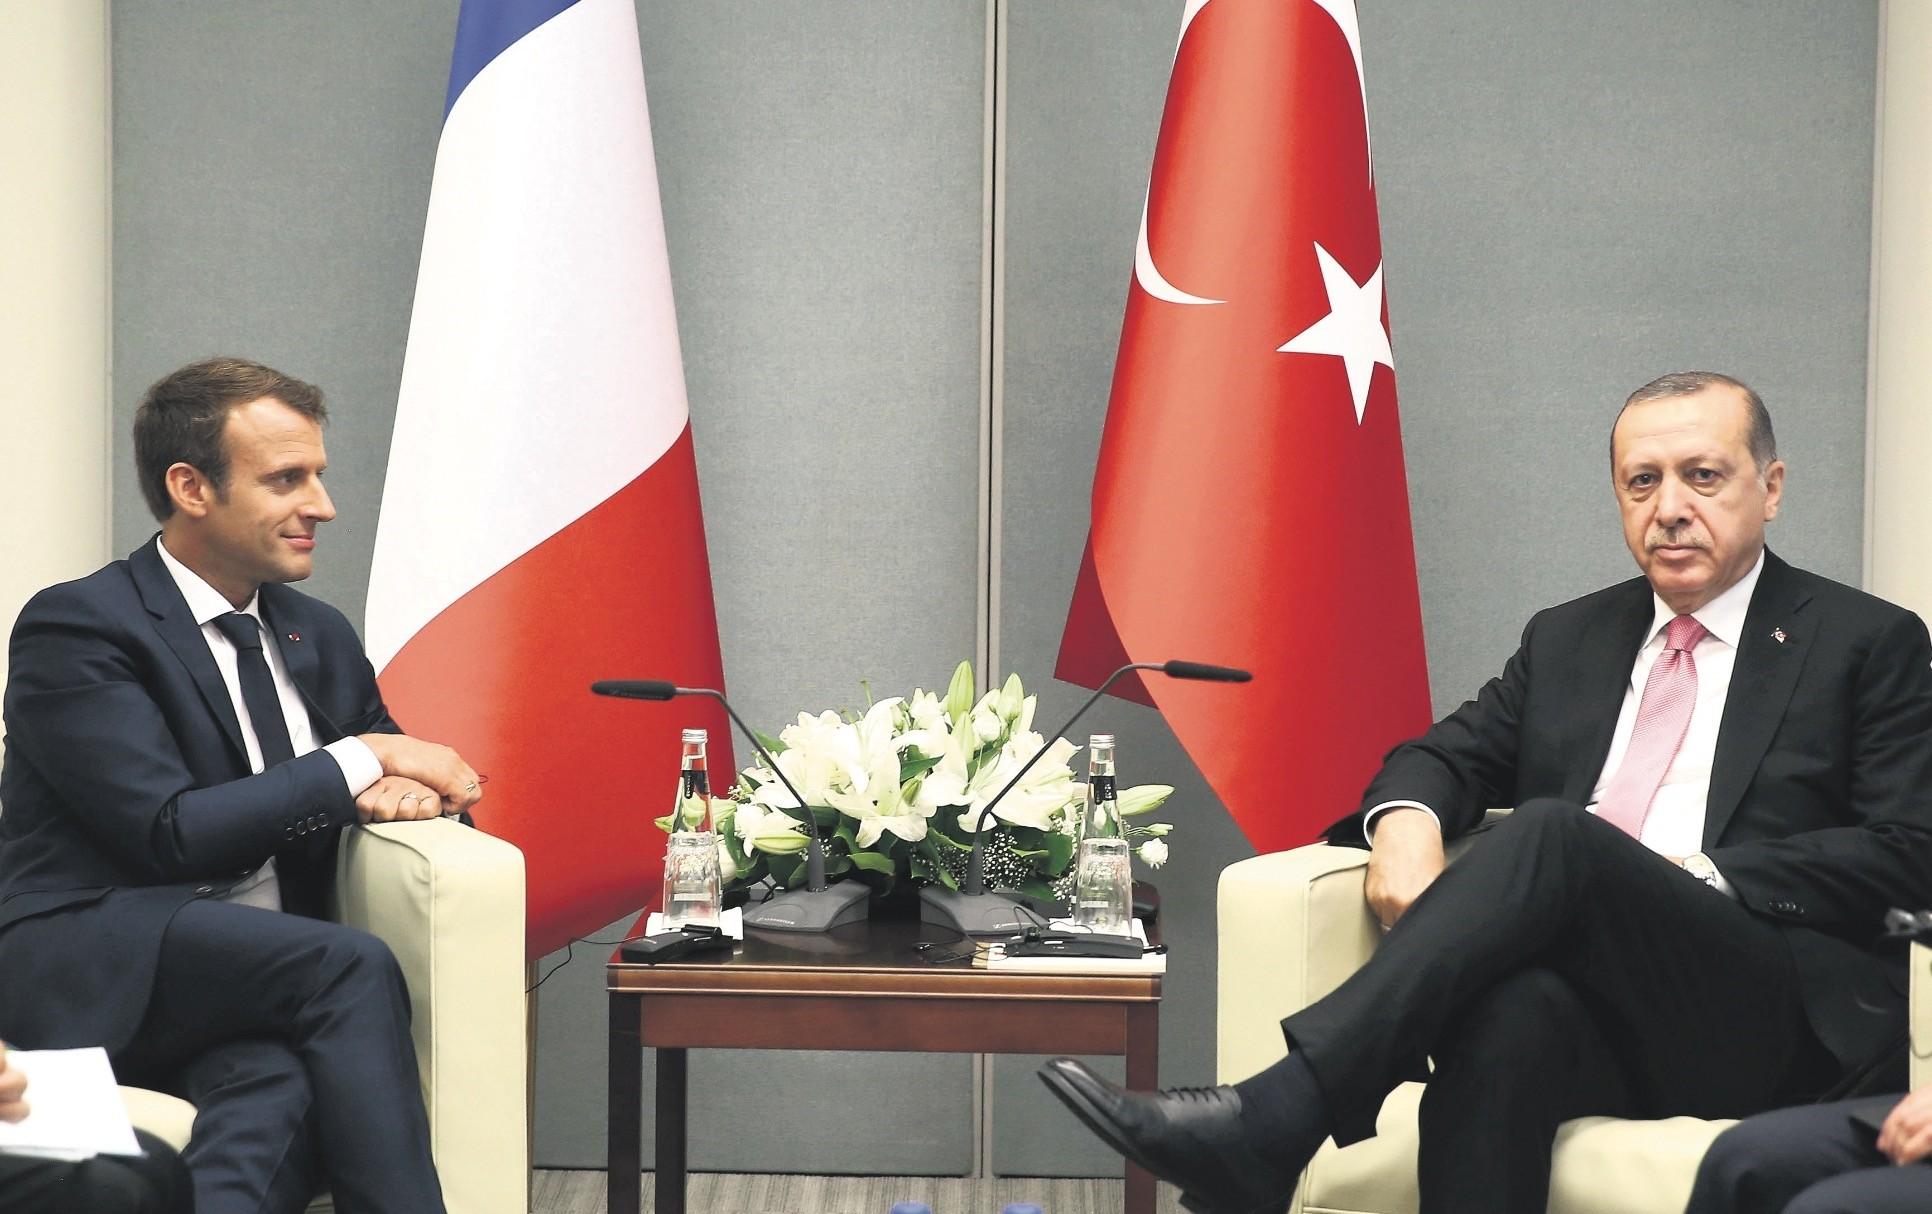 President Erdou011fan and French President Macron pose for photos at U.N. headquarters, Sept. 19, 2017.